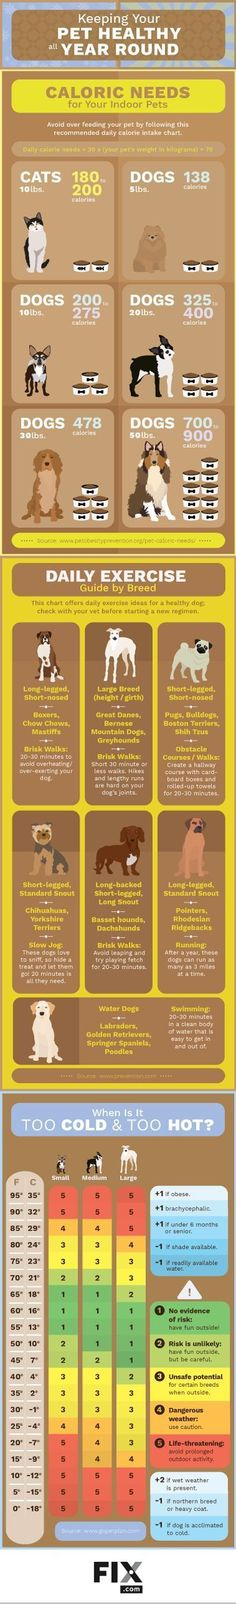 Check out this infographic on How to Keep Your Pet Healthy All Year Round  // KaufmannsPuppyTraining.com // Kaufmann's Puppy Training // dog training // dog love // puppy love